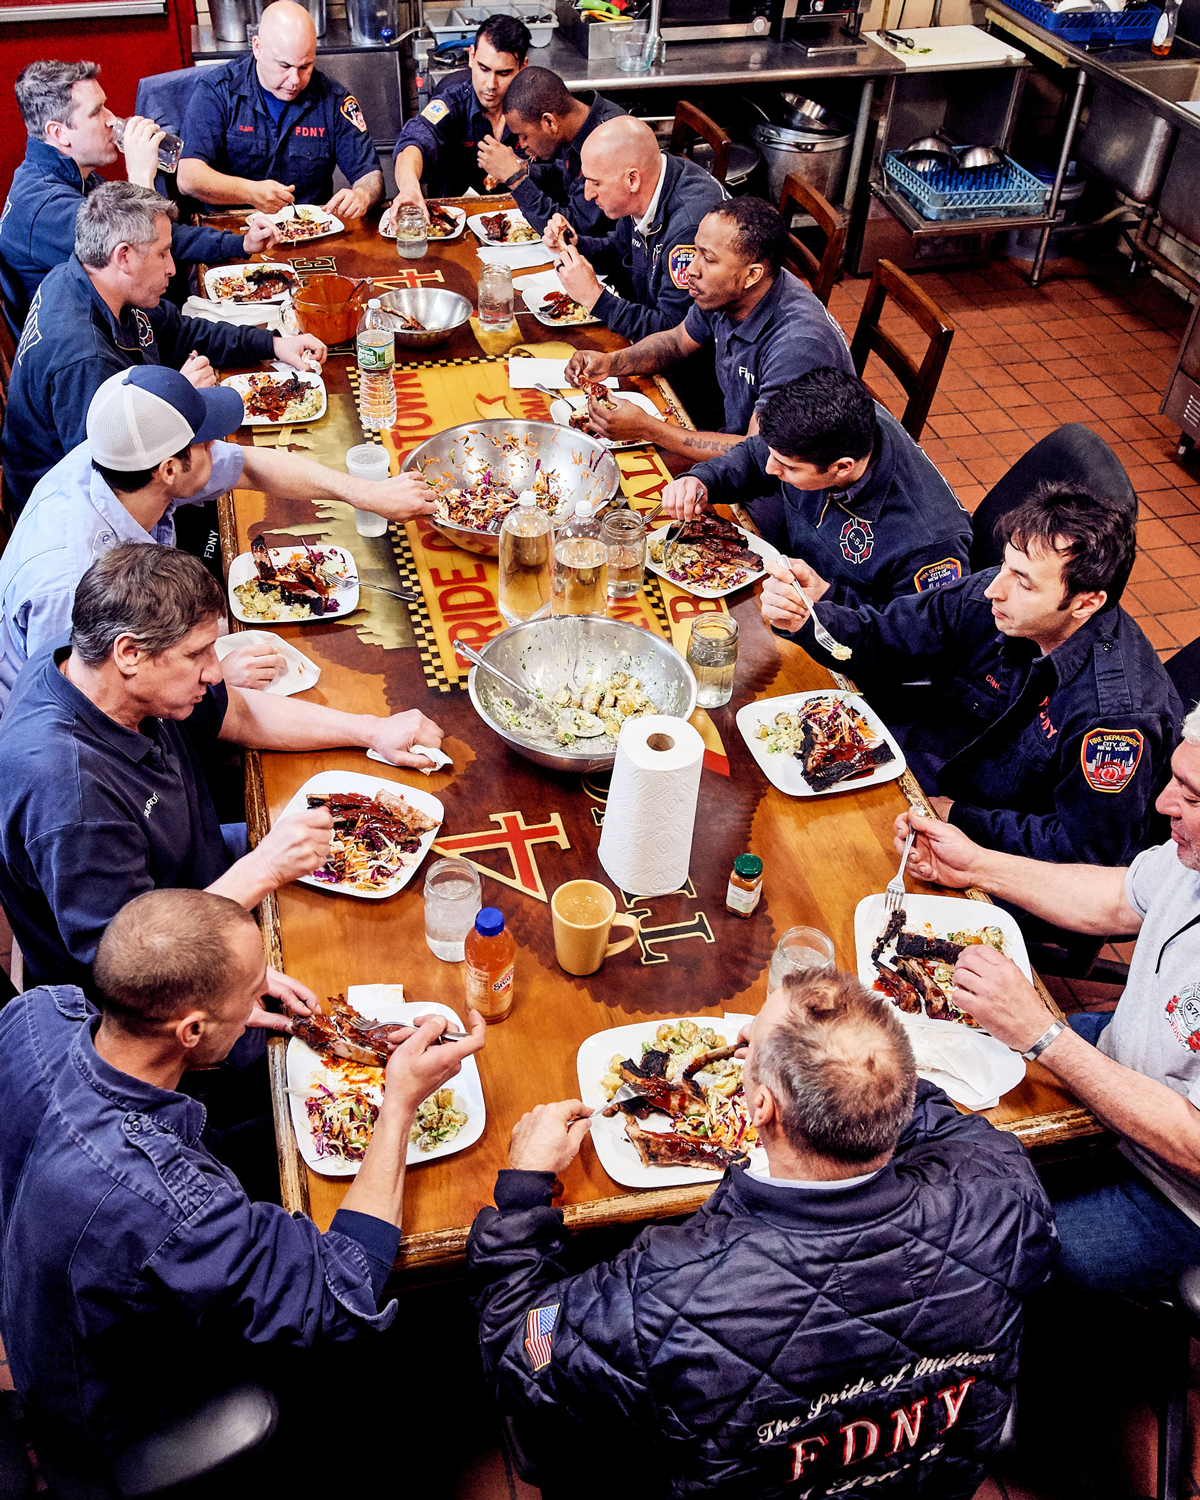 firefighters sitting around a table eating dinner